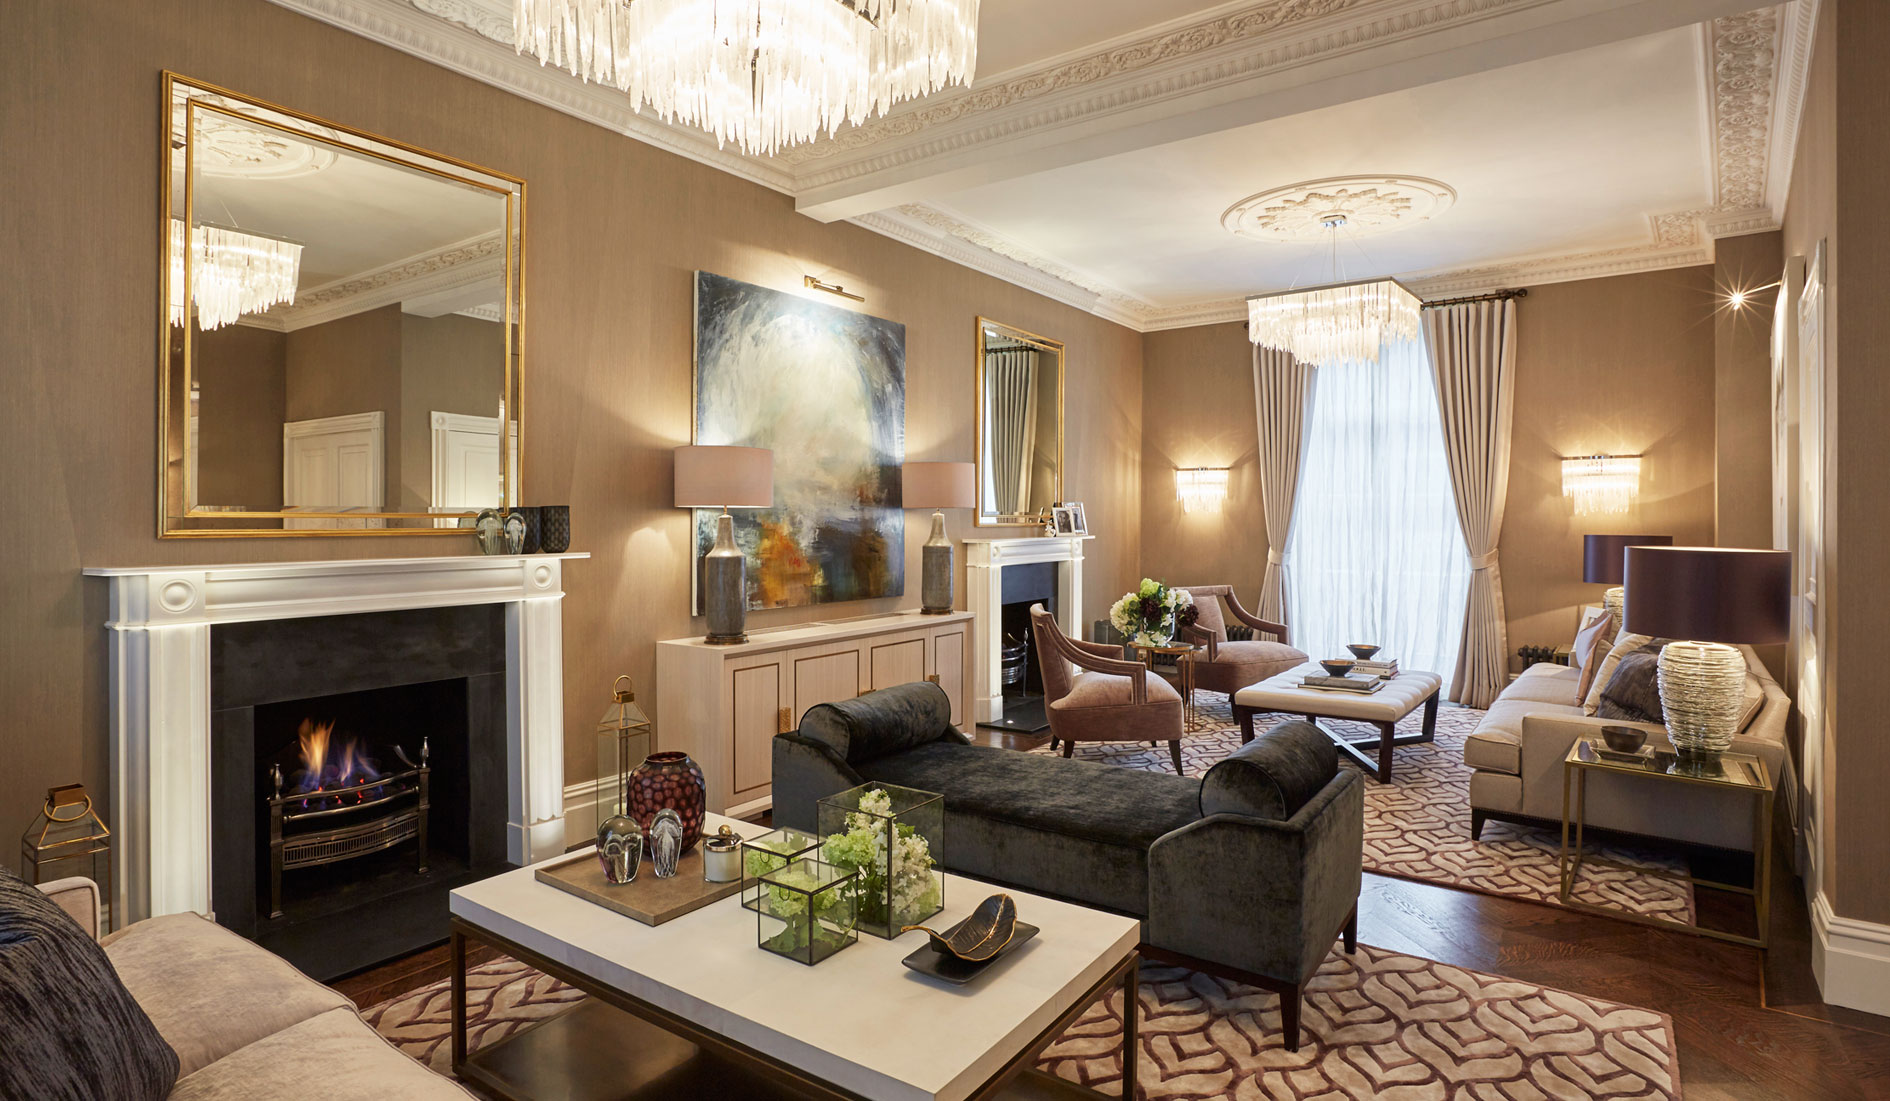 Drawing rom at Wilton Street house by Residence One. Furniture is bespoke and made in the UK